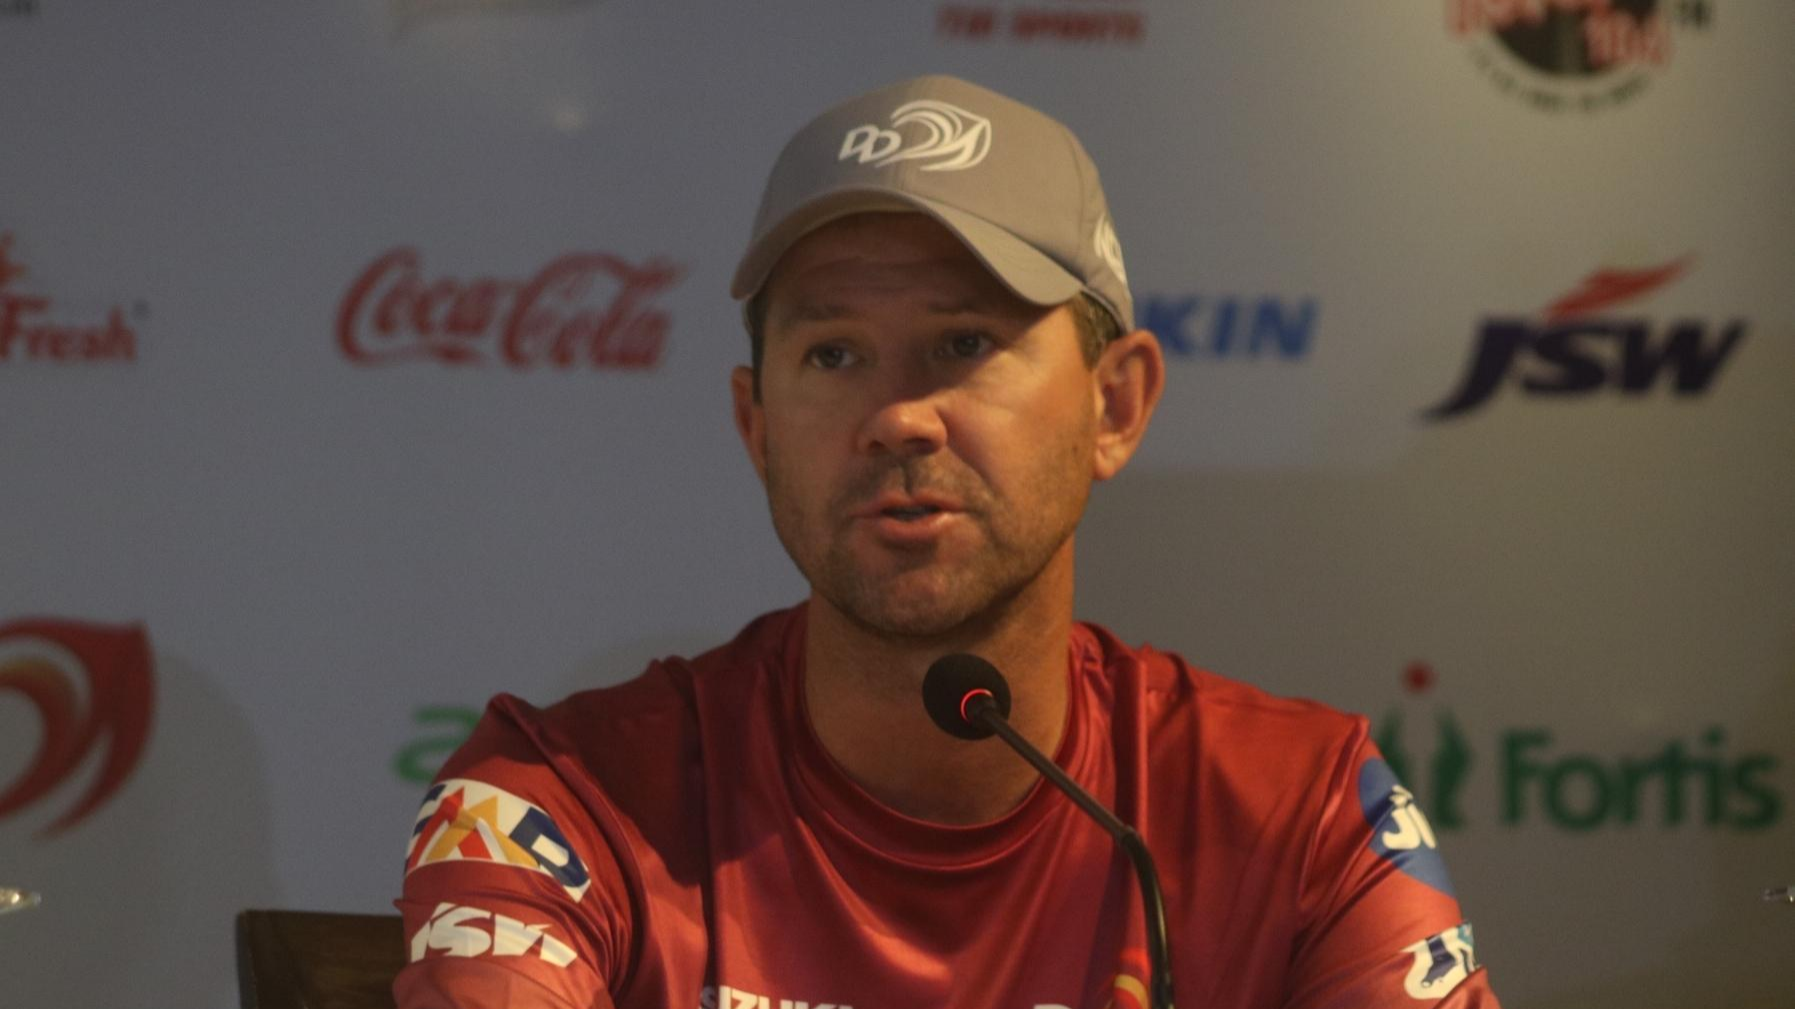 IPL 2018: Indian players have been absolutely magnificent for DD, says Ricky Ponting